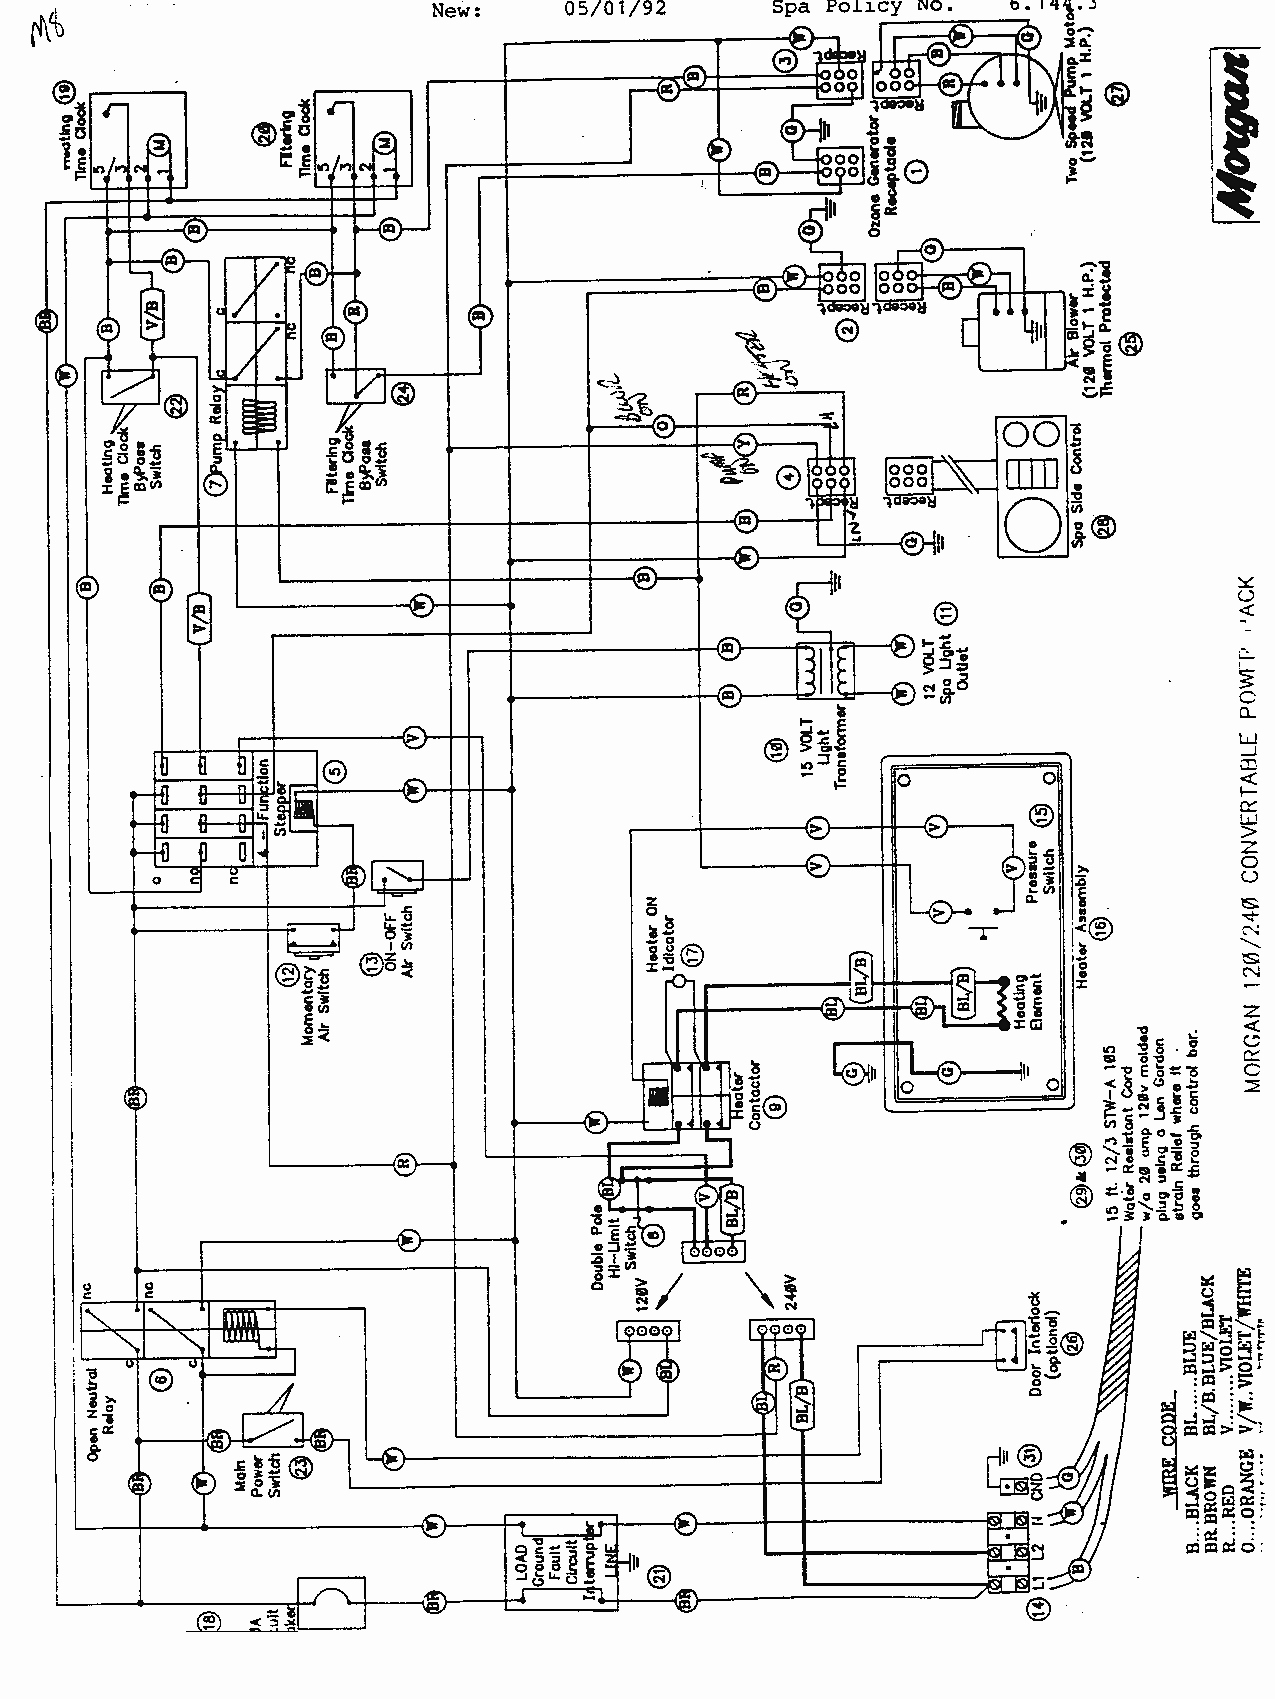 spa wiring schematic